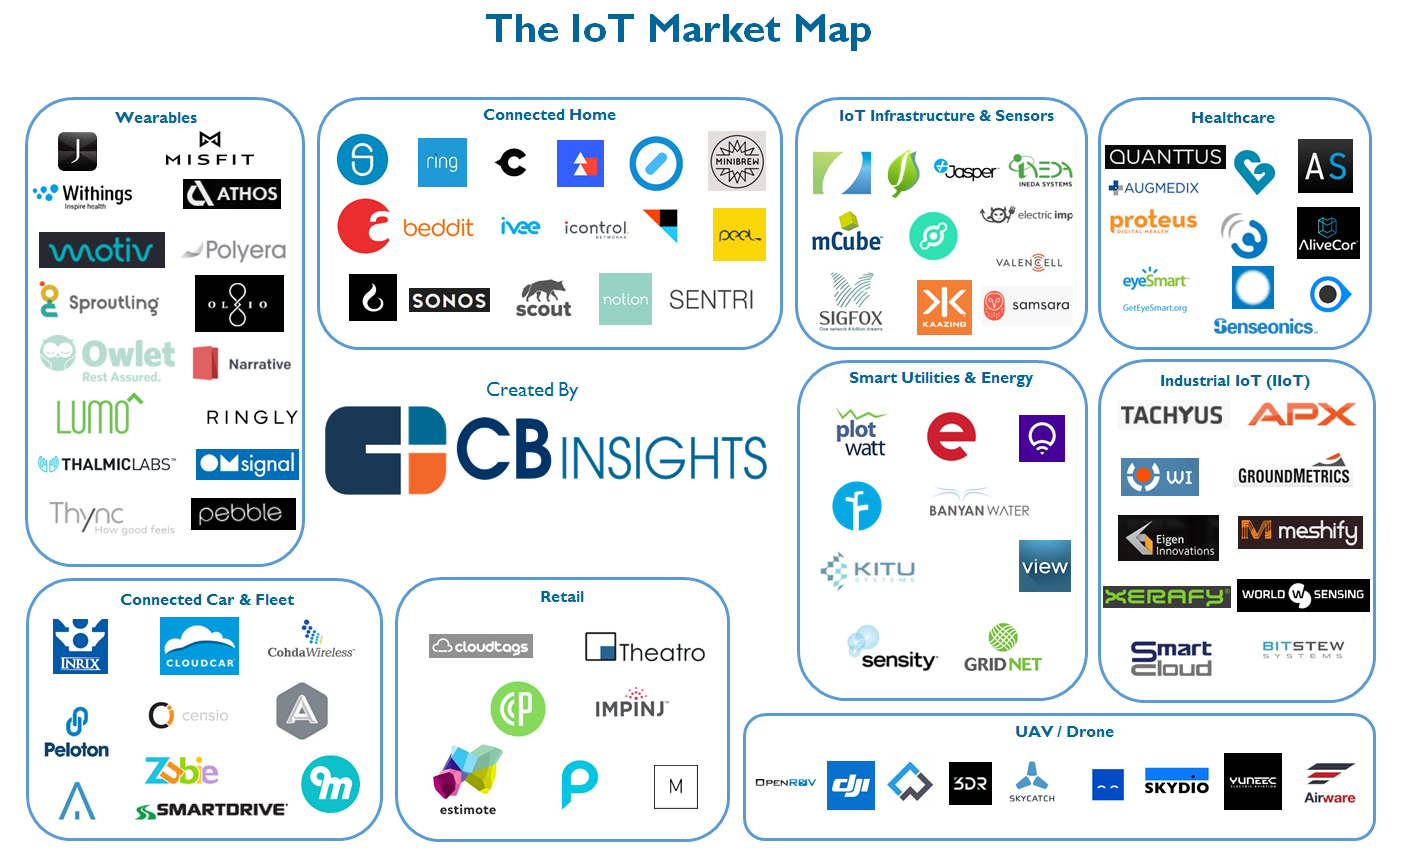 IoT Market Map